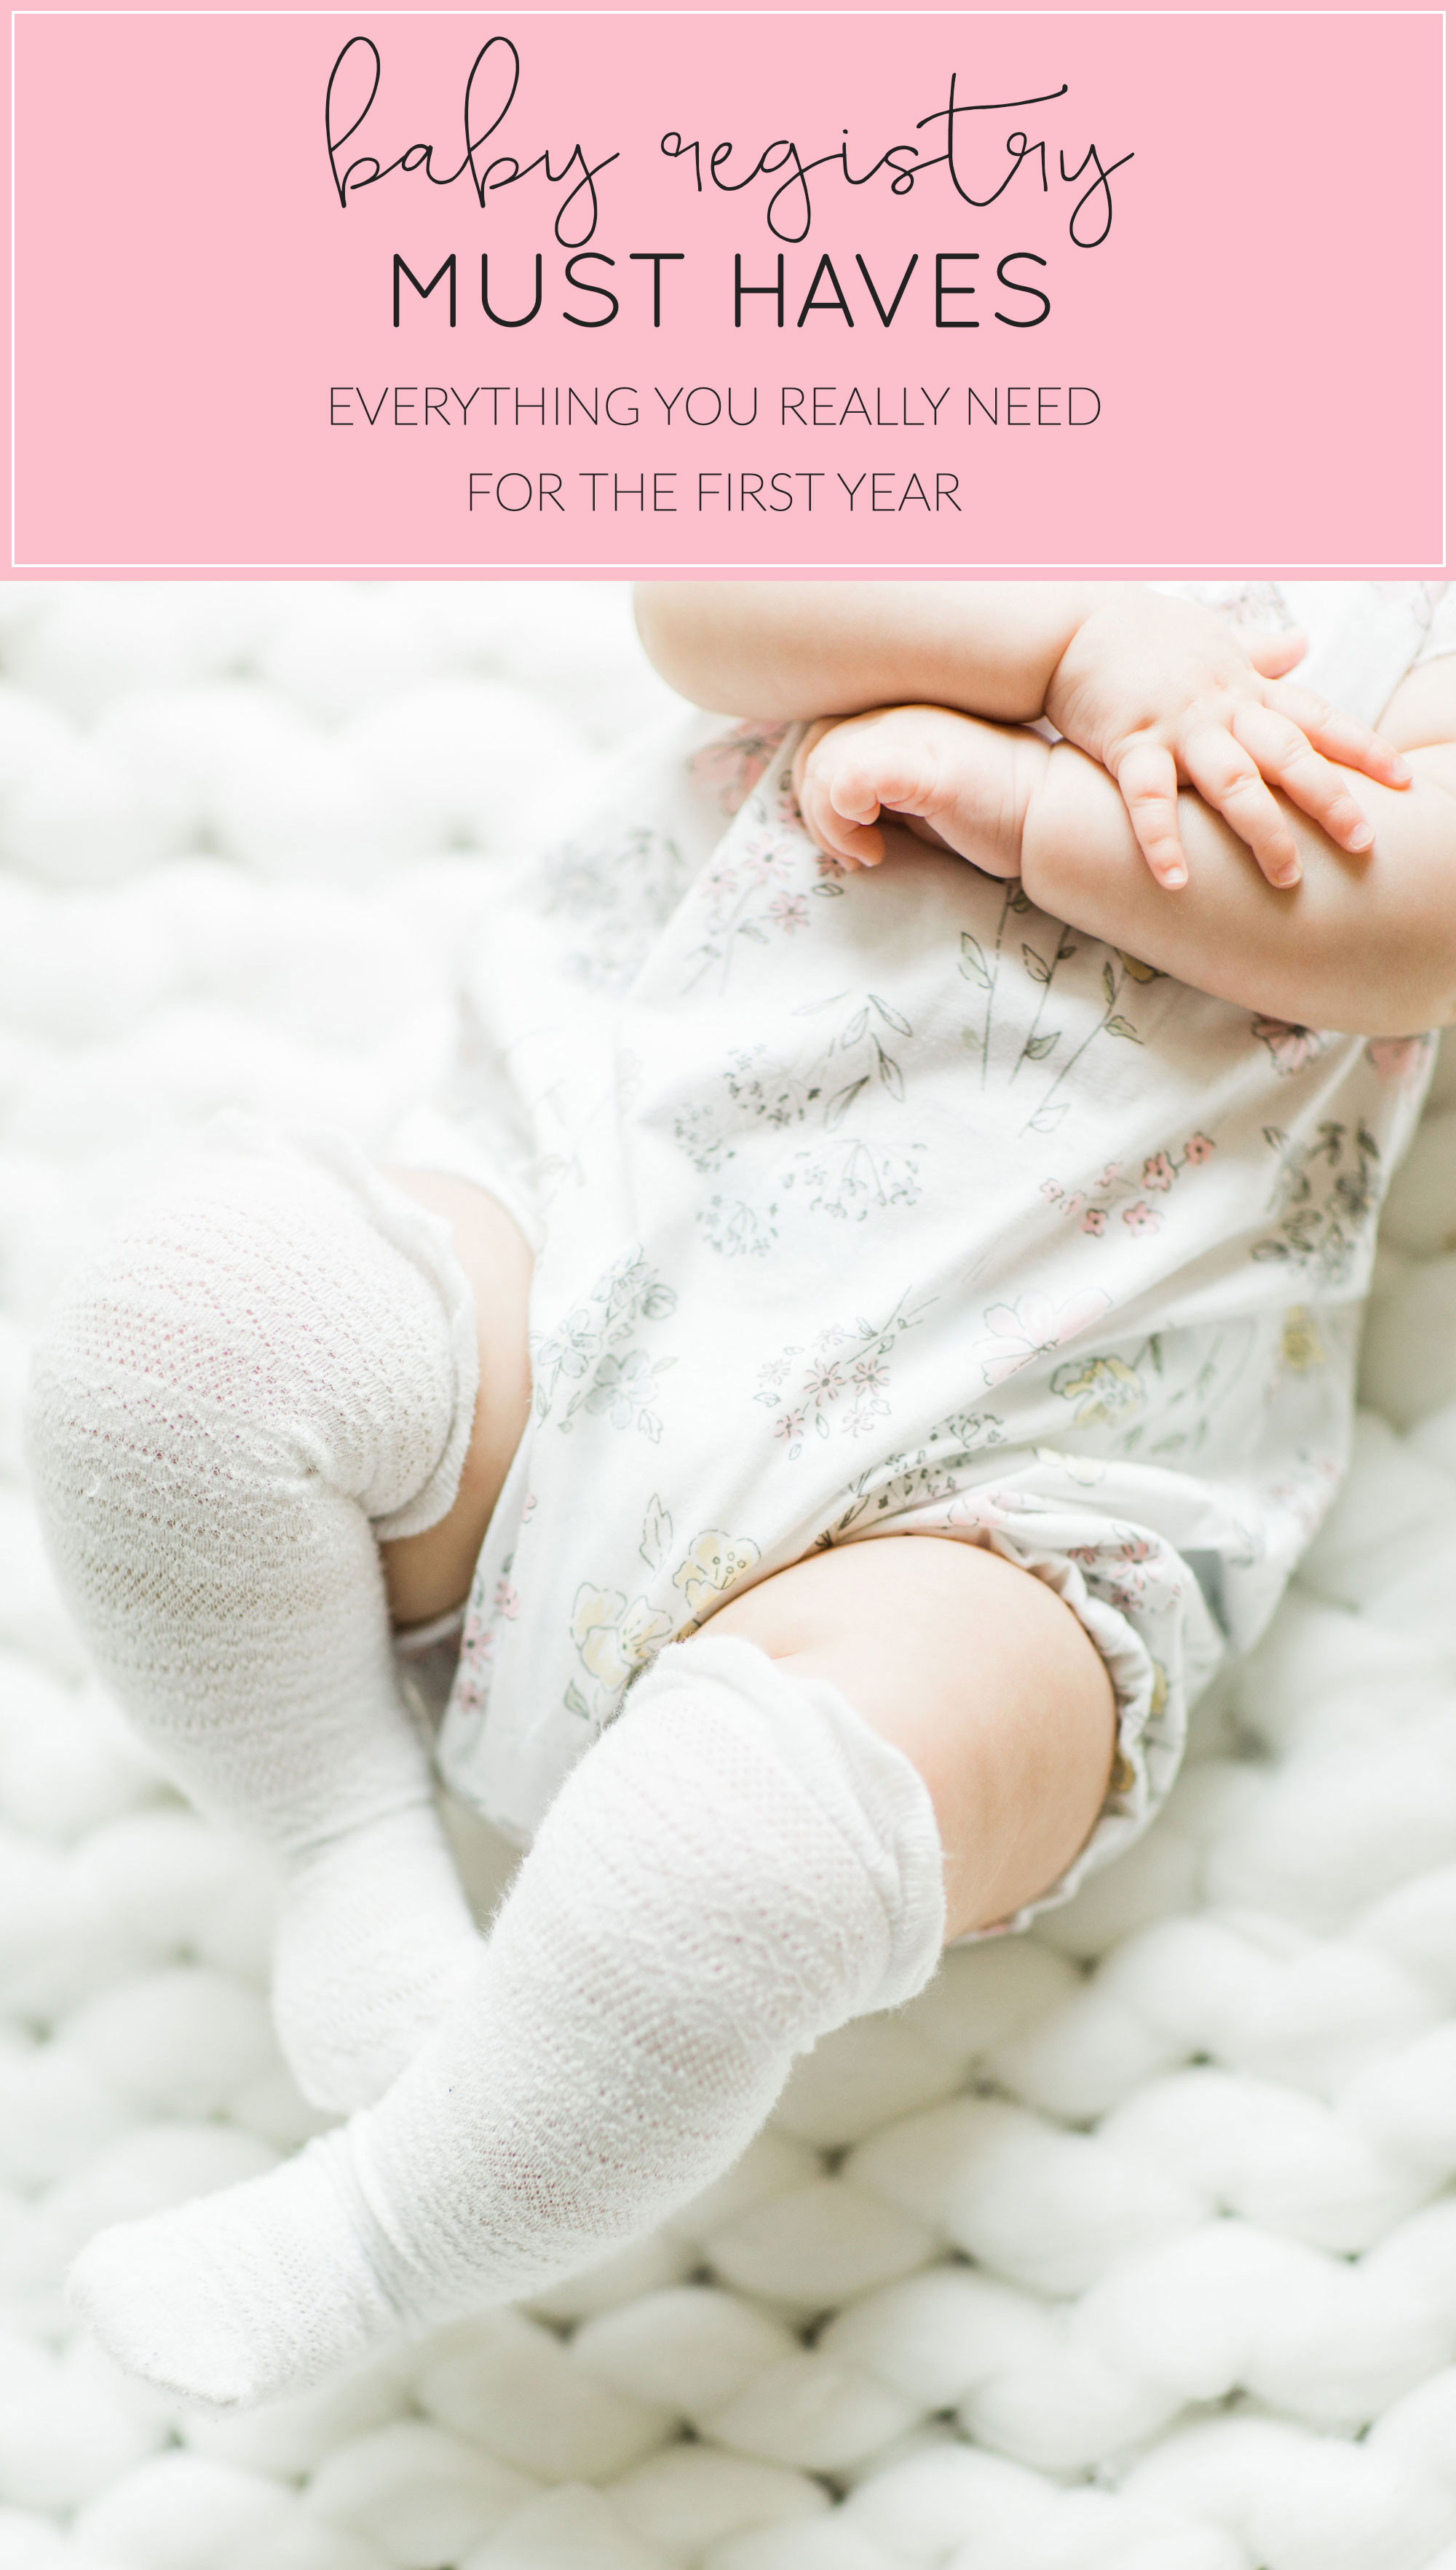 Mom blogger Lexi of Glitter, Inc. shares what baby items were must-haves and essentials for baby's first year, including exactly what to put on a baby registry and why; plus what not to register for. This baby registry checklist is HUGE. Click through for the details. | glitterinc.com | @glitterinc